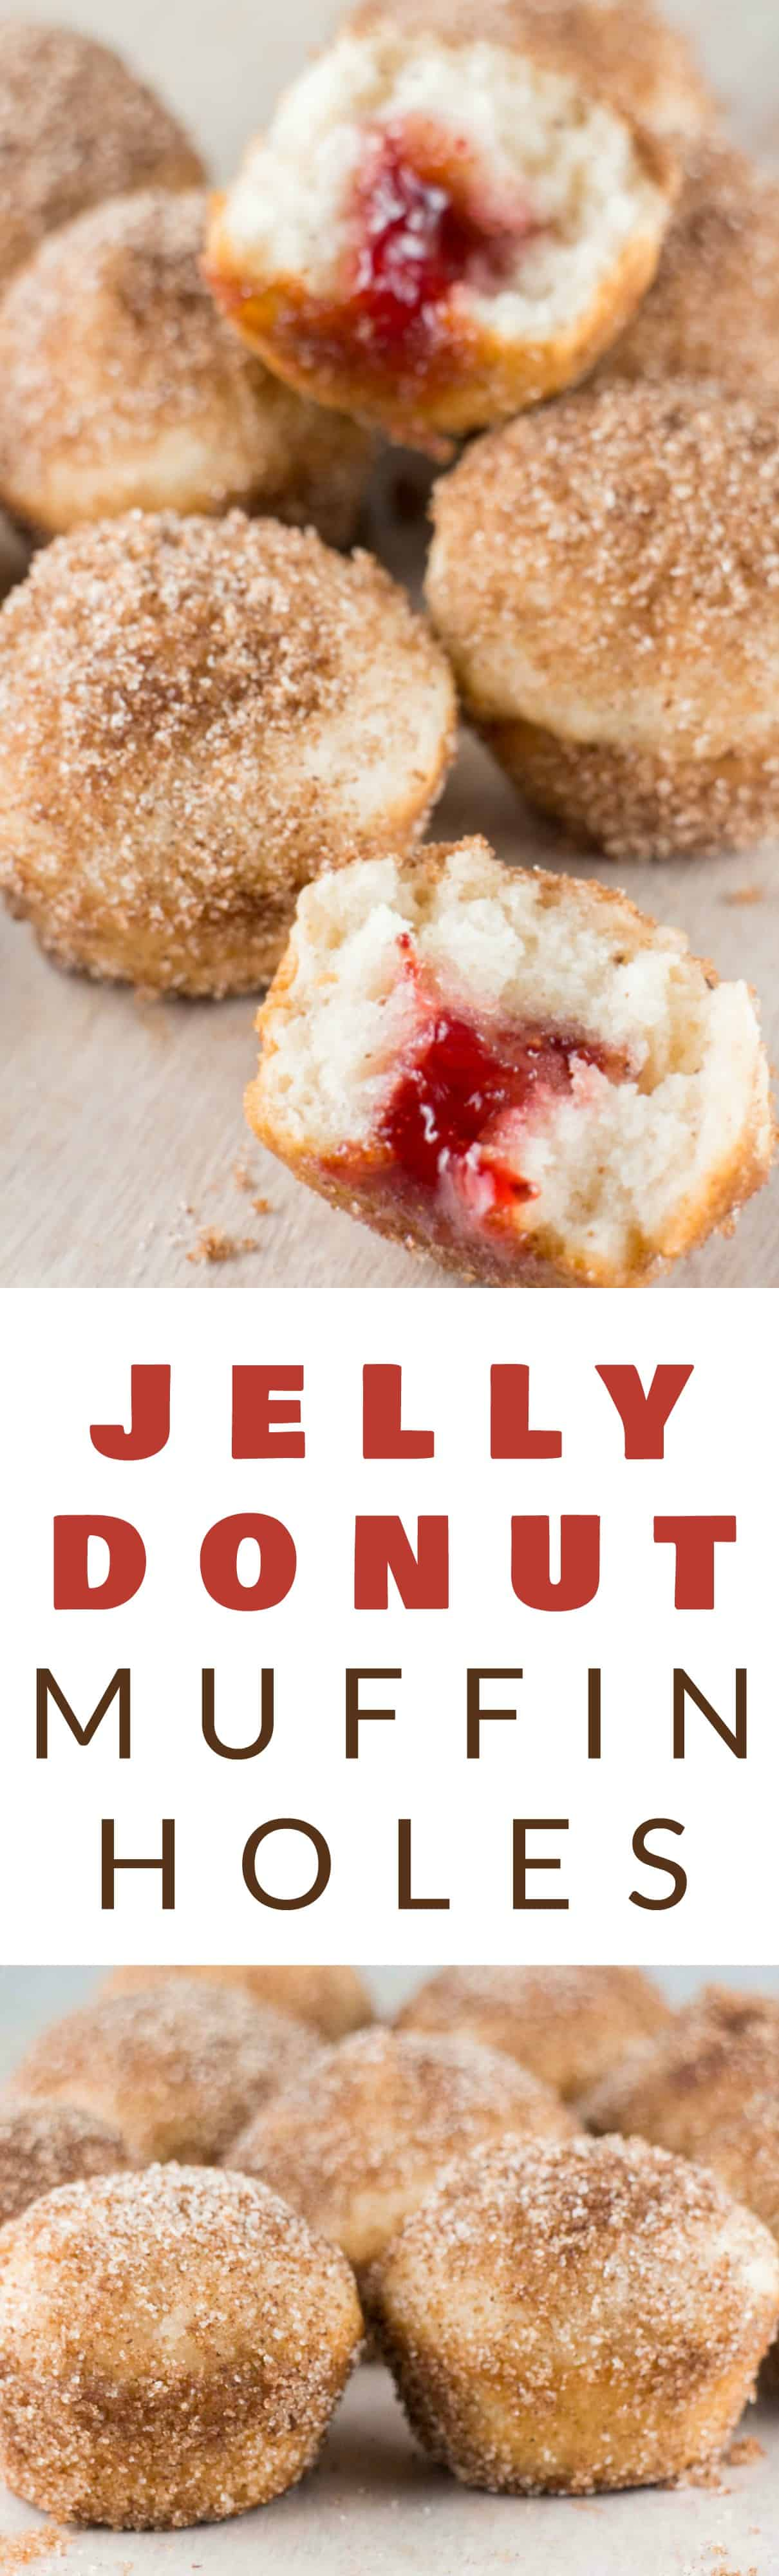 Jelly Donut Holes recipe! These baked donut holes are easy to make and are rolled around in delicious cinnamon sugar! These homemade treats taste just like Dunkin' Donuts Munchkins but are much healthier!